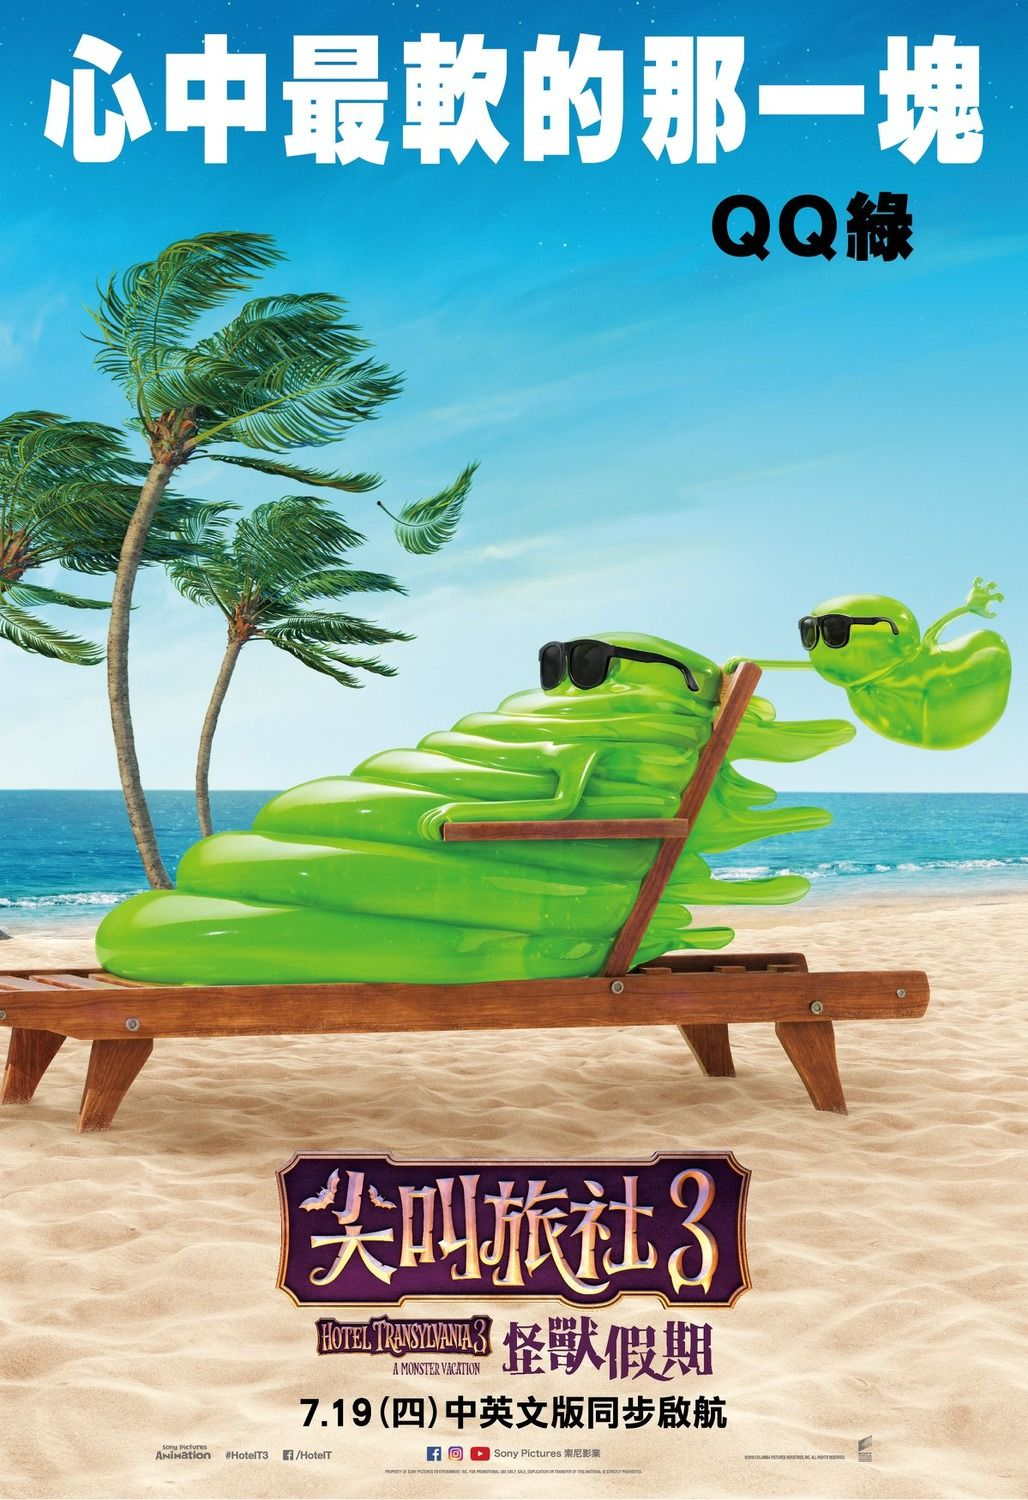 Return To The Main Poster Page For Hotel Transylvania 3 Summer Vacation